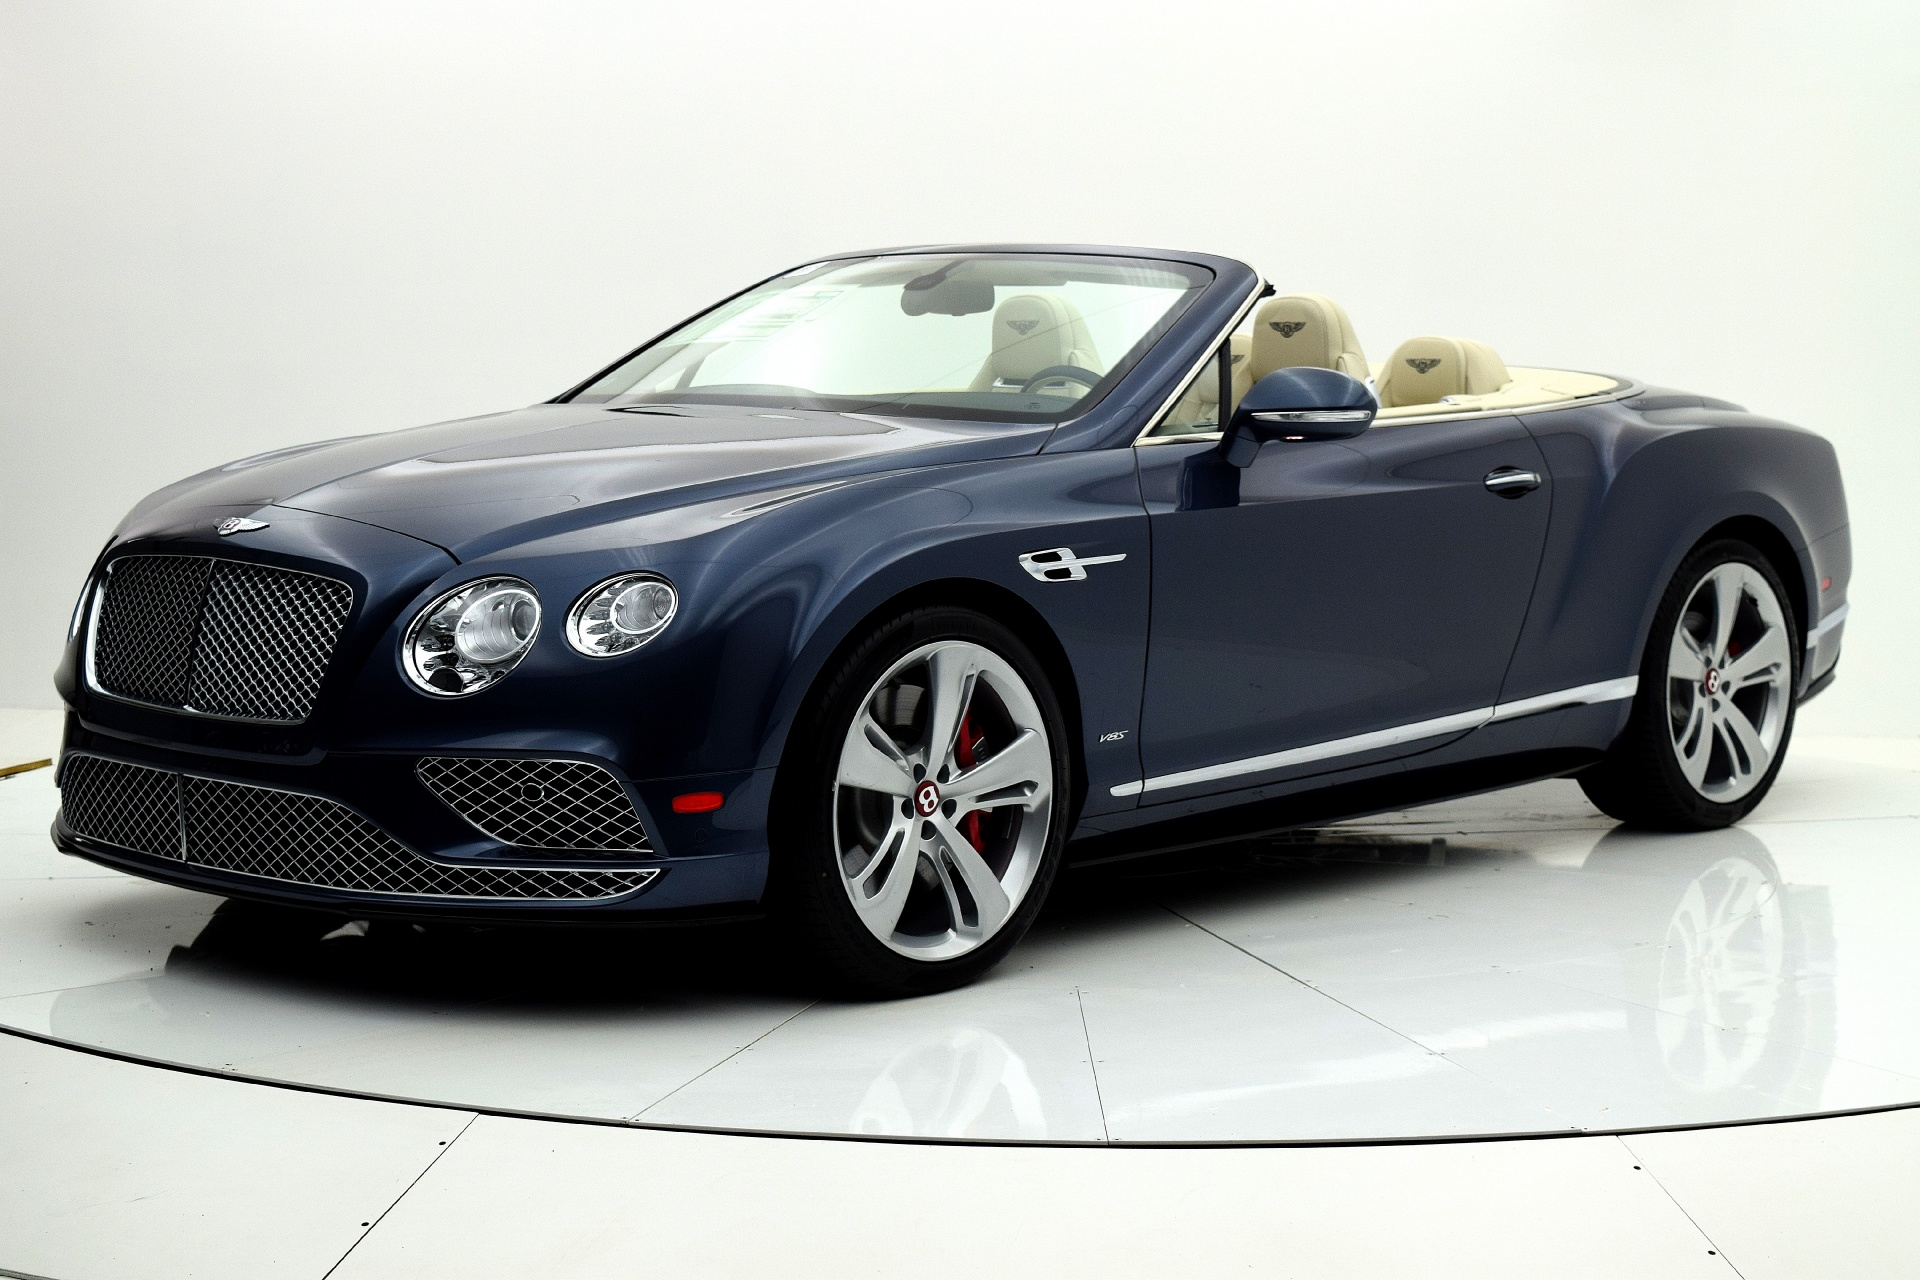 Used 2016 Bentley Continental GT V8 S for sale $149,880 at F.C. Kerbeck Aston Martin in Palmyra NJ 08065 2